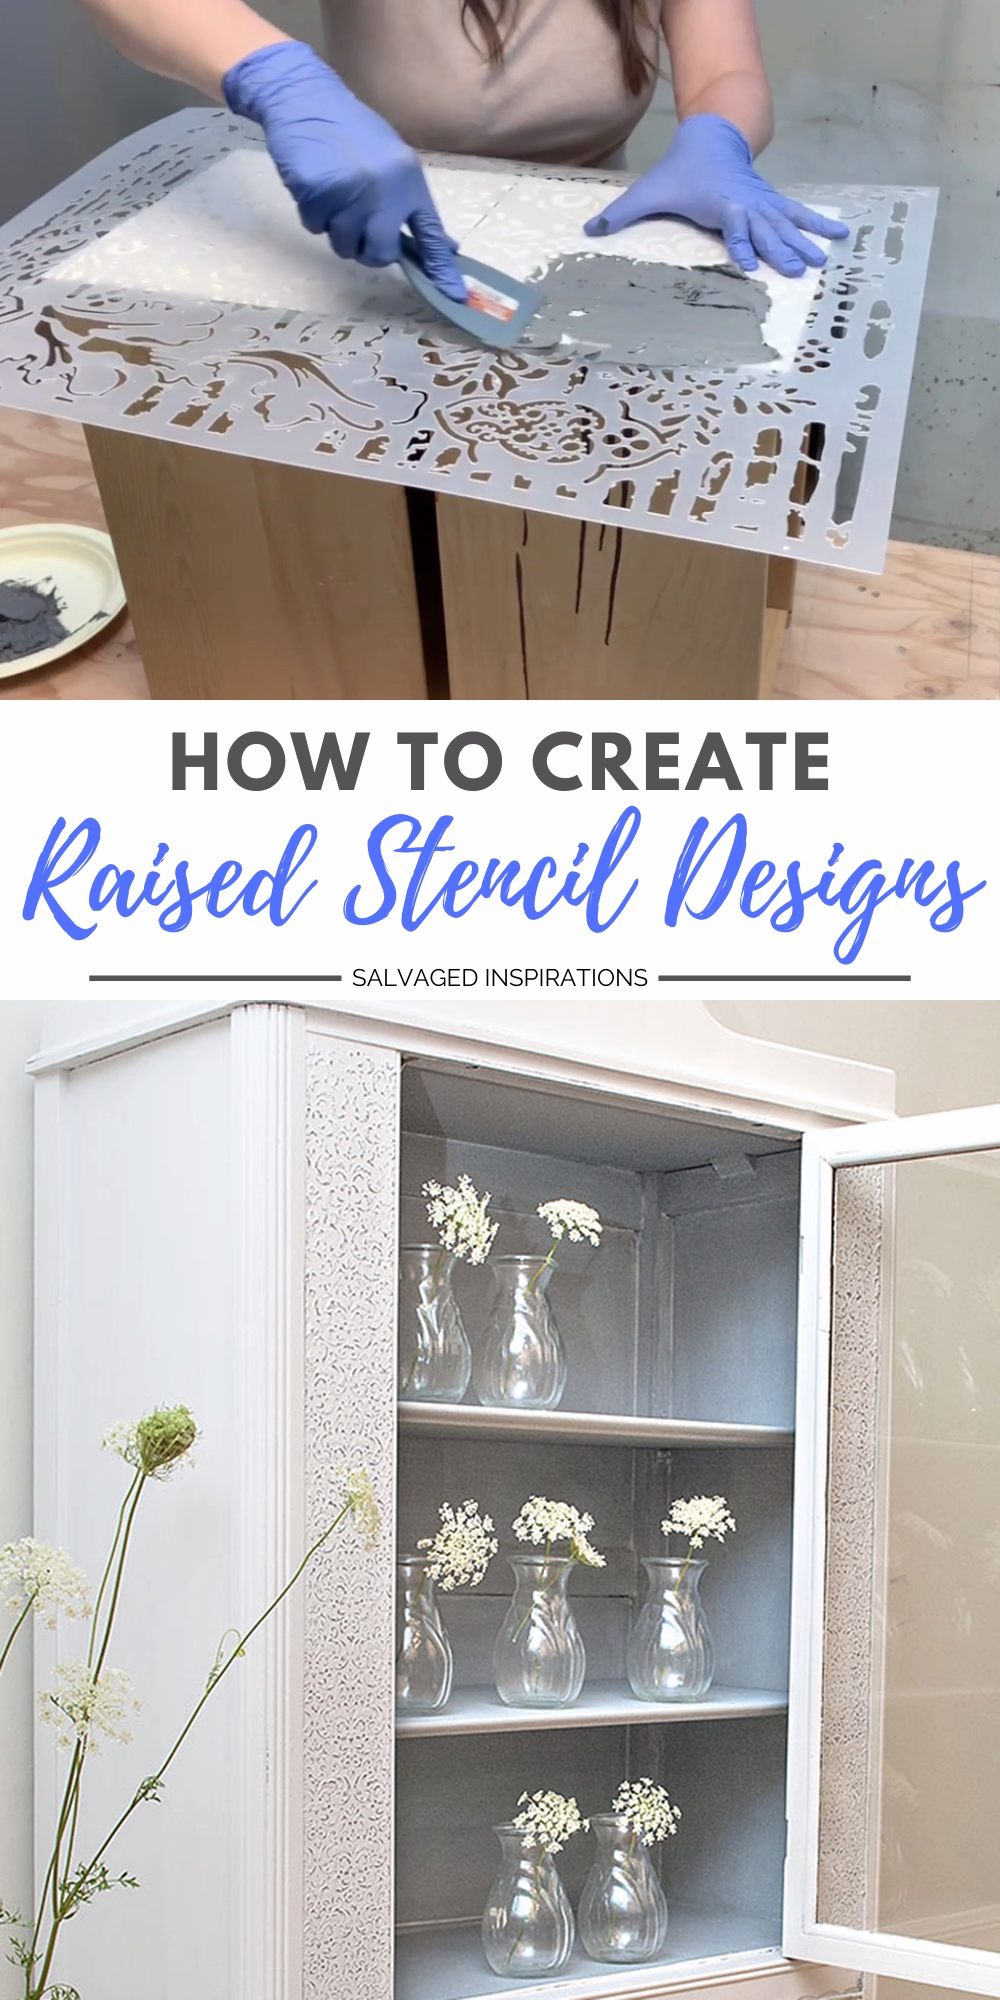 How To Create Raised Stencil Designs